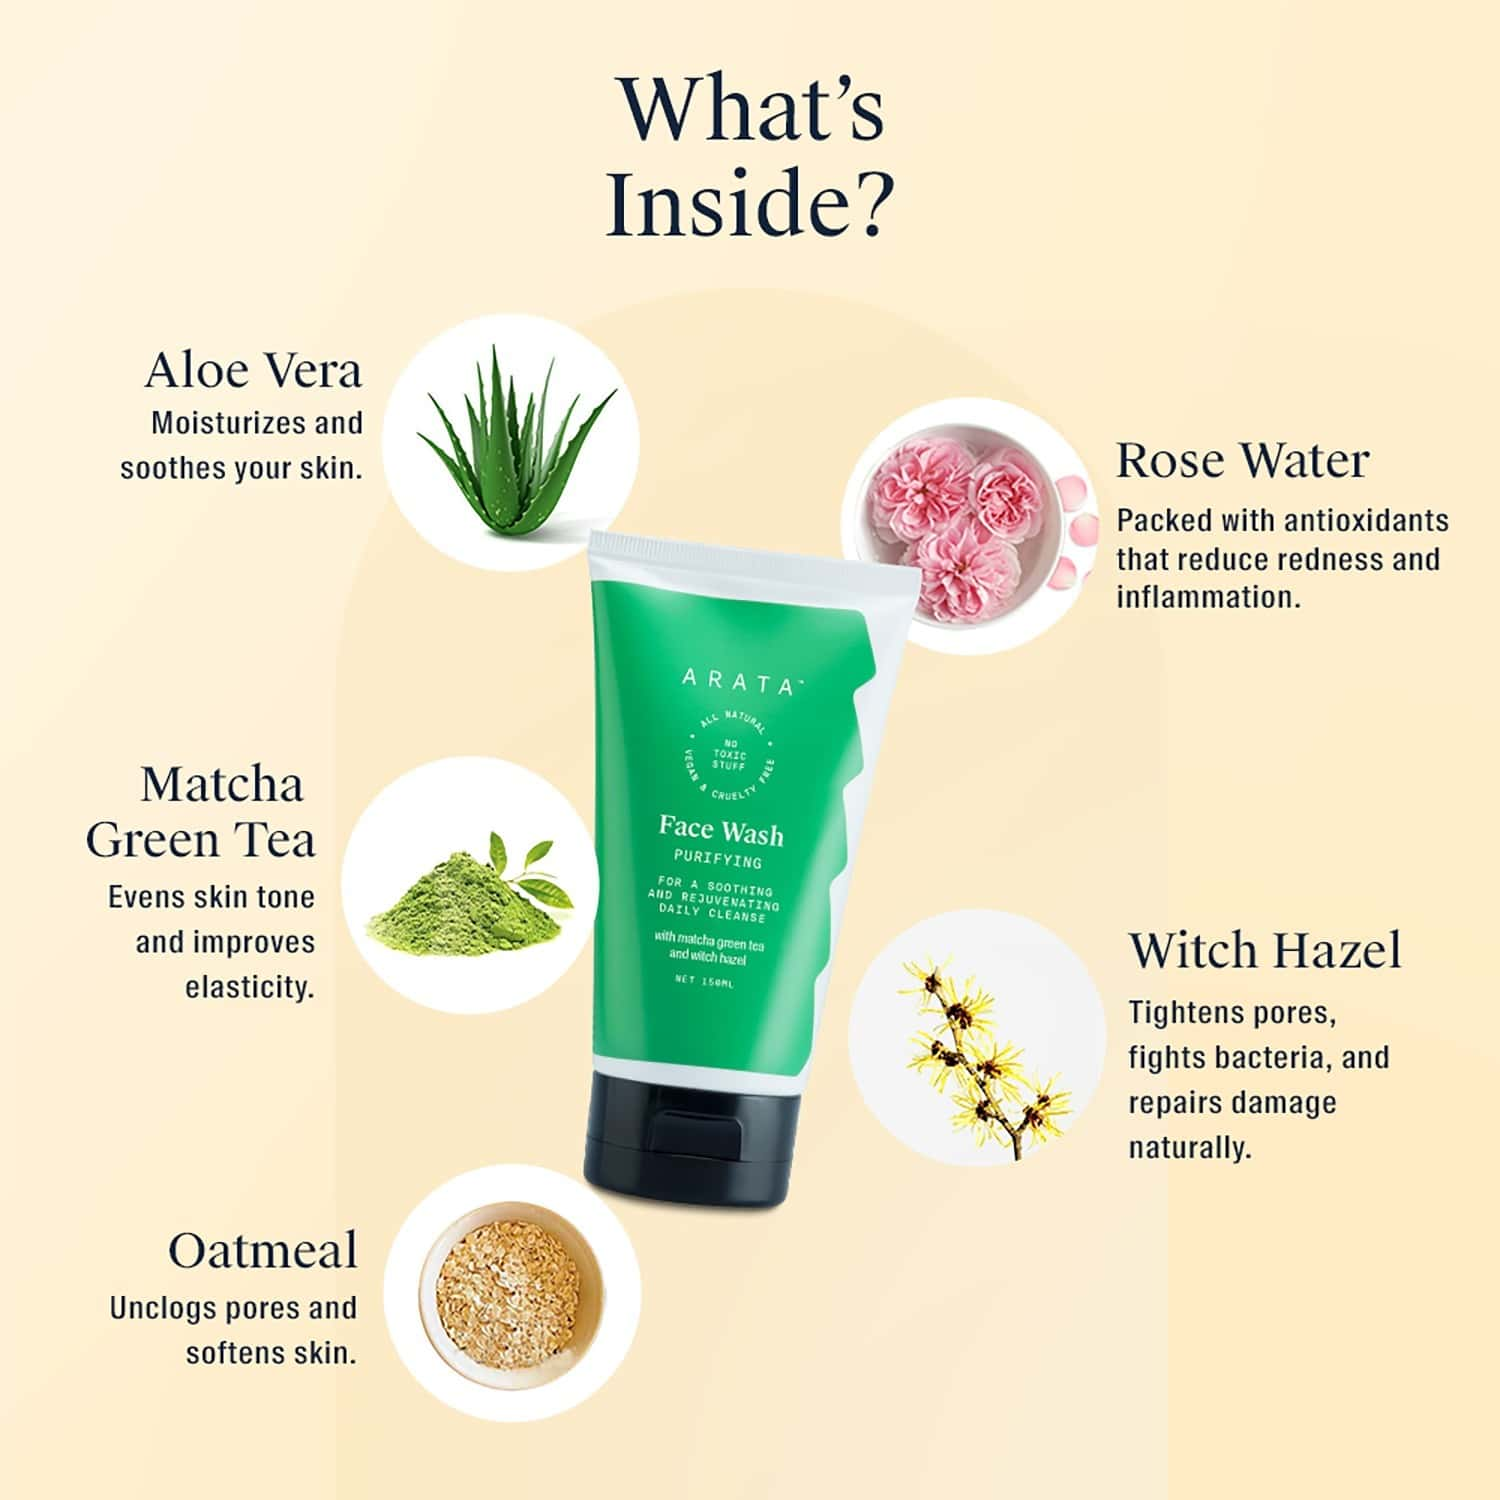 Arata Natural Purifying Face Wash With Matcha Green Tea, Aloe Vera & Witch Hazel For Women & Men ||all-natural, Vegan & Cruelty-free ||for A Soothing & Rejuvenating Daily Cleanse (150 Ml)